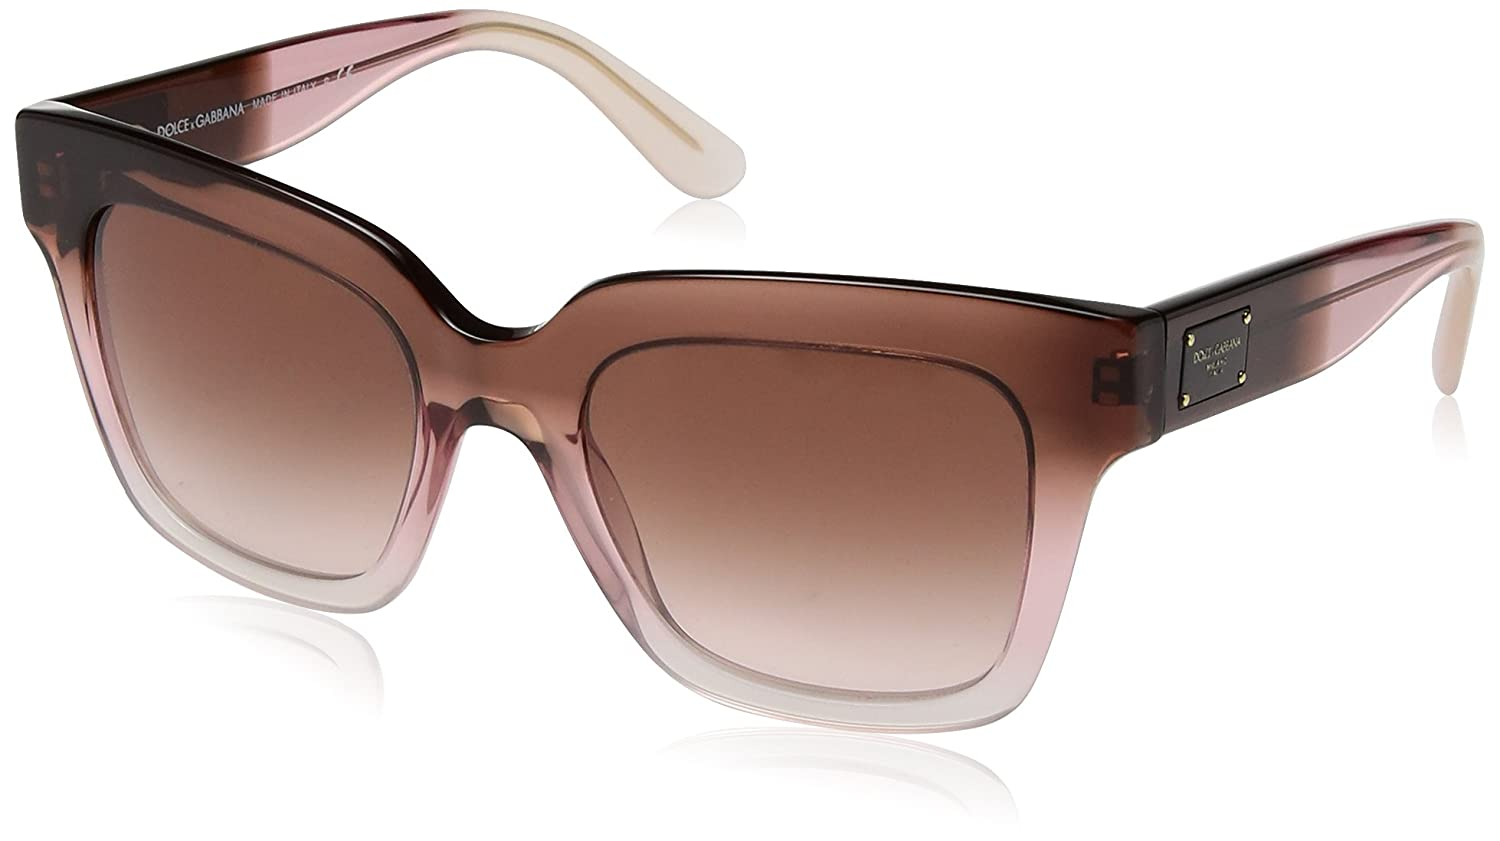 Dolce and Gabbana 306013 Bordeaux / Pink / Powder 306013 Dark Pink Fade 51  Squa: Amazon.co.uk: Clothing